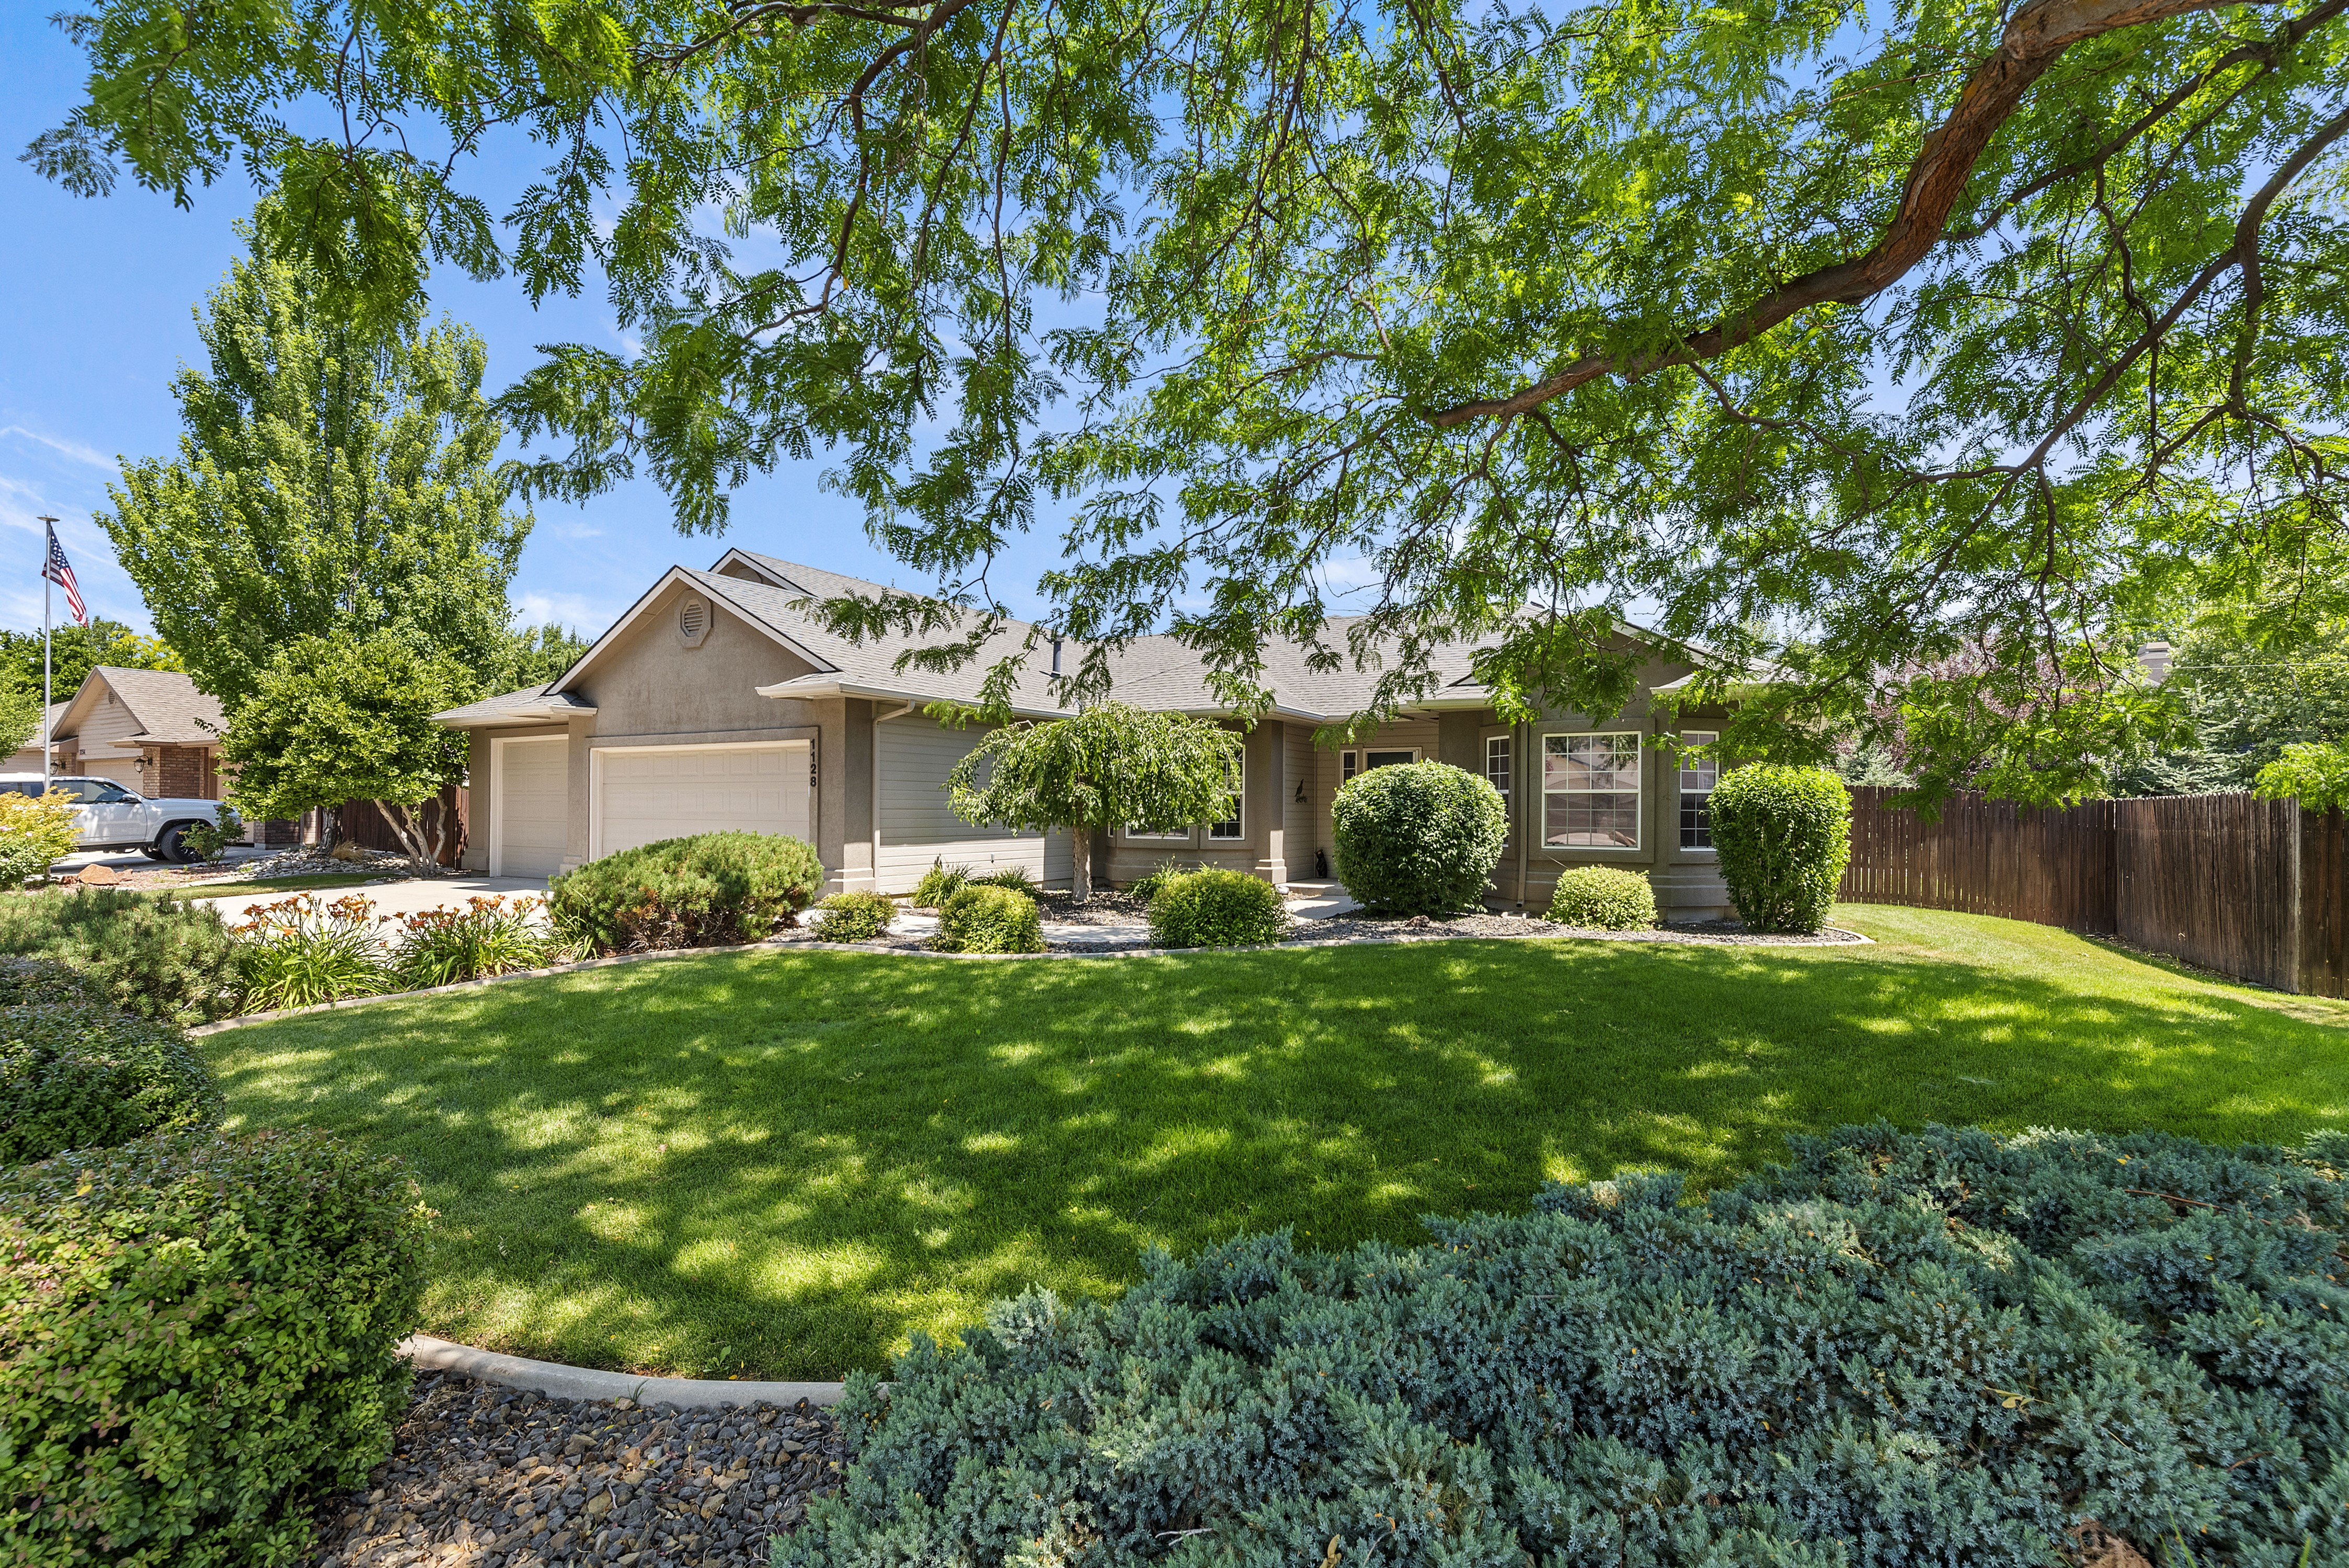 JUST LISTED! A Great Eagle Idaho Home for Sale in Desirable Community!